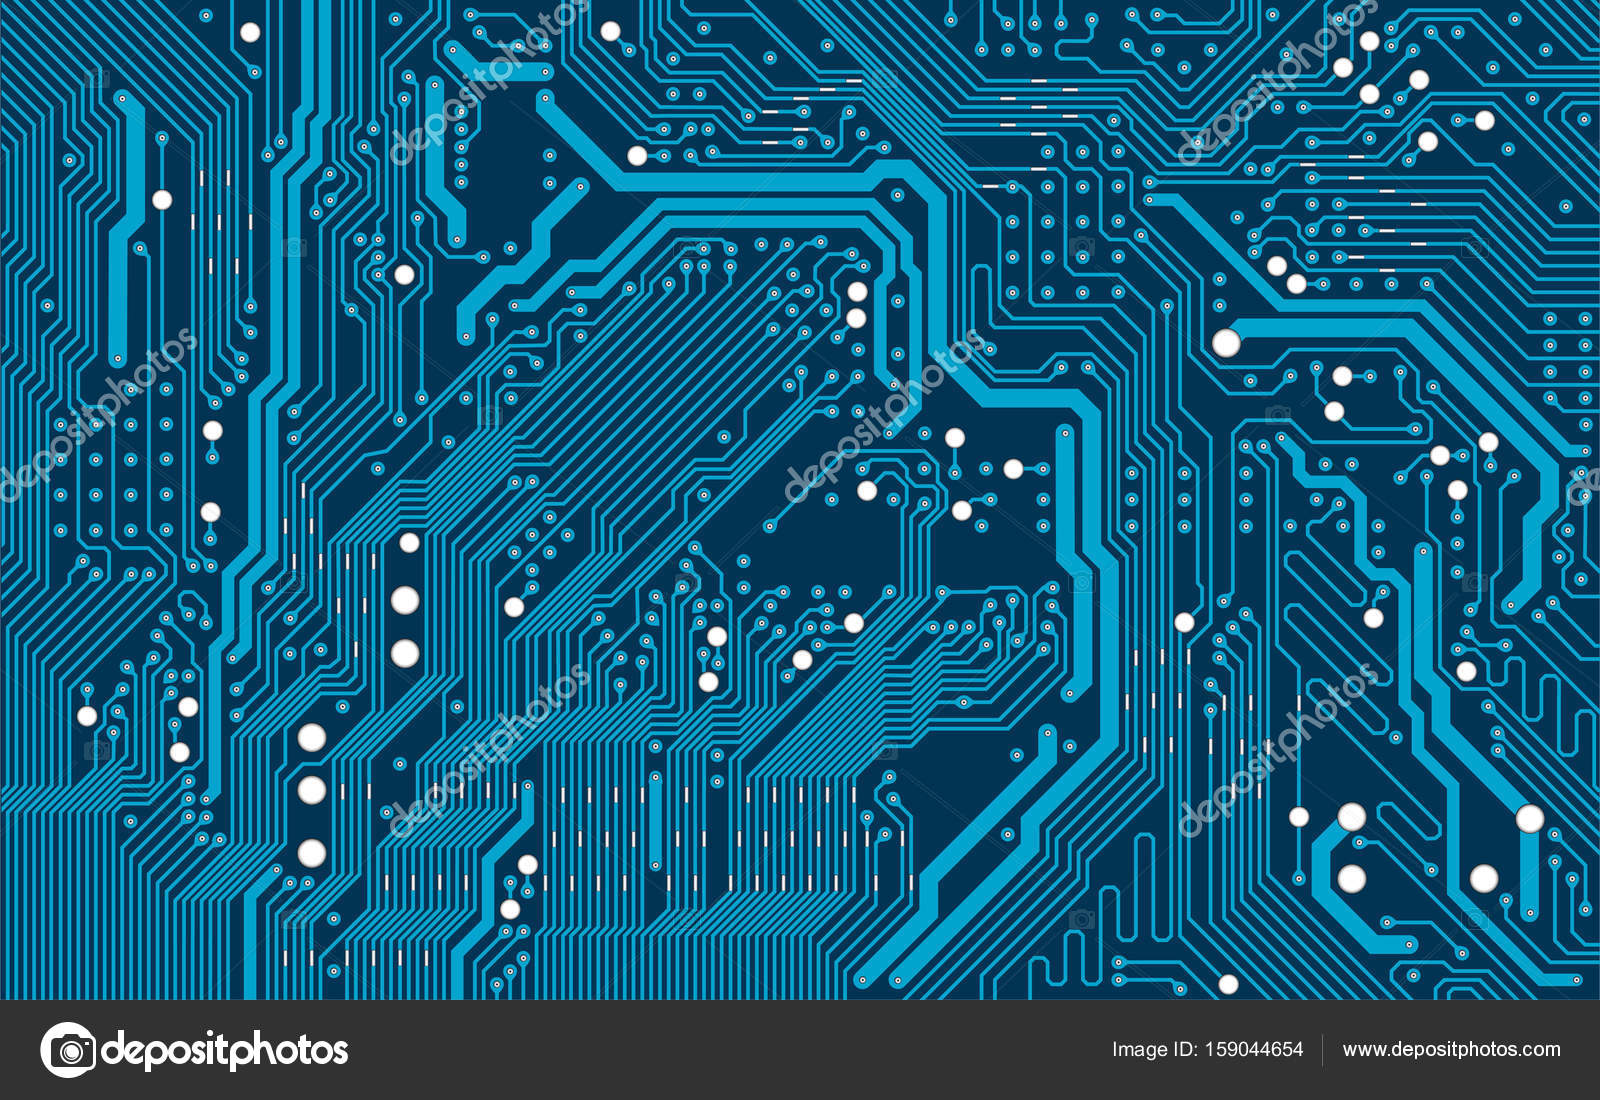 circuitry definition of circuitry by merriamwebster - HD1920×1080